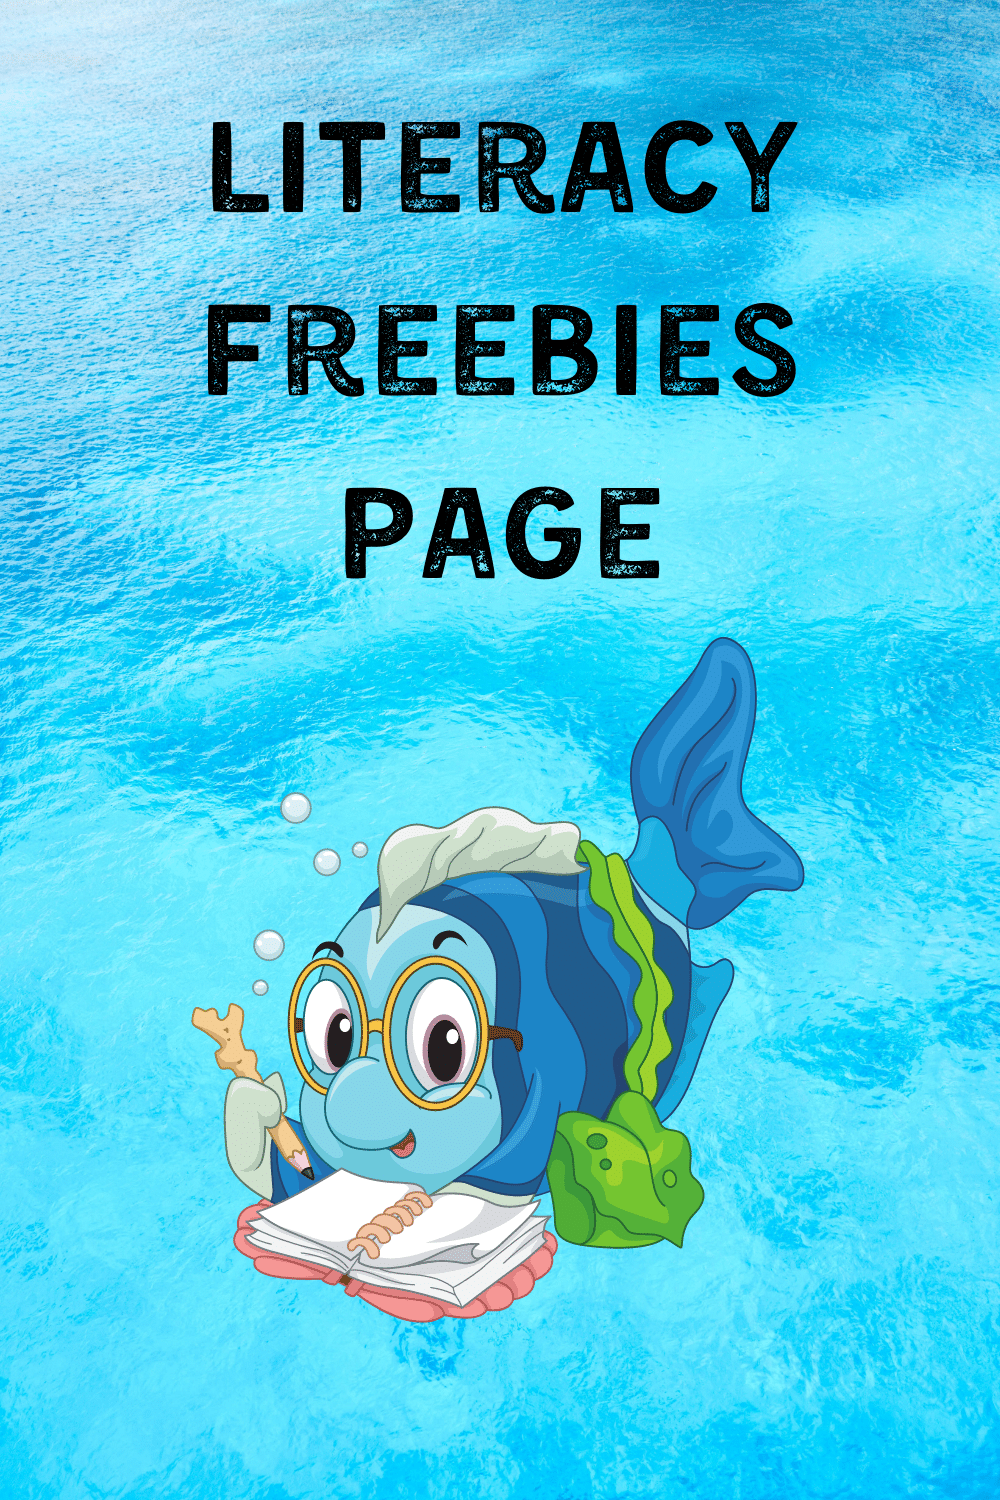 FREE Literacy Resources for Primary Grades -- Everything on this page is FREE for elementary education